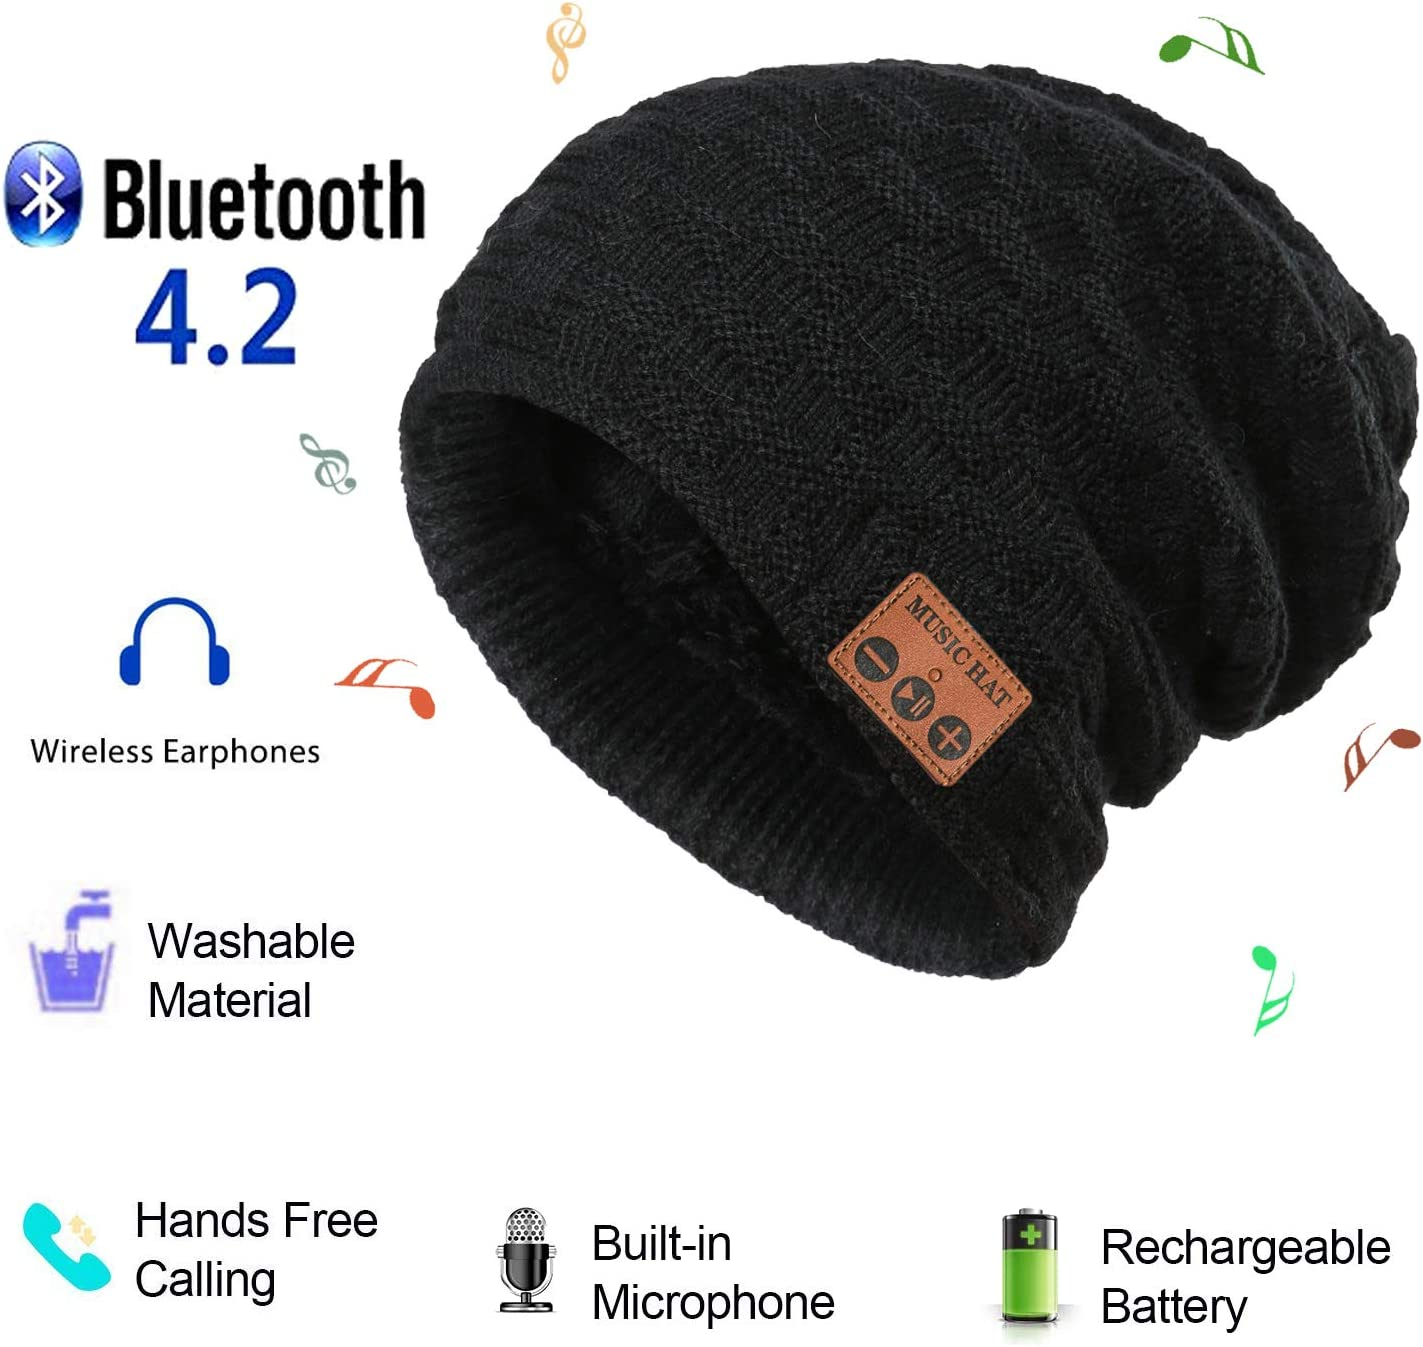 Bluetooth Beanie Music Hat,Wireless Headphones Musical Speaker Grid Pattern Knitted Cap for Winter Walking Dog Winter Sports Traveling Exercise Running Waiting Bus (Black)